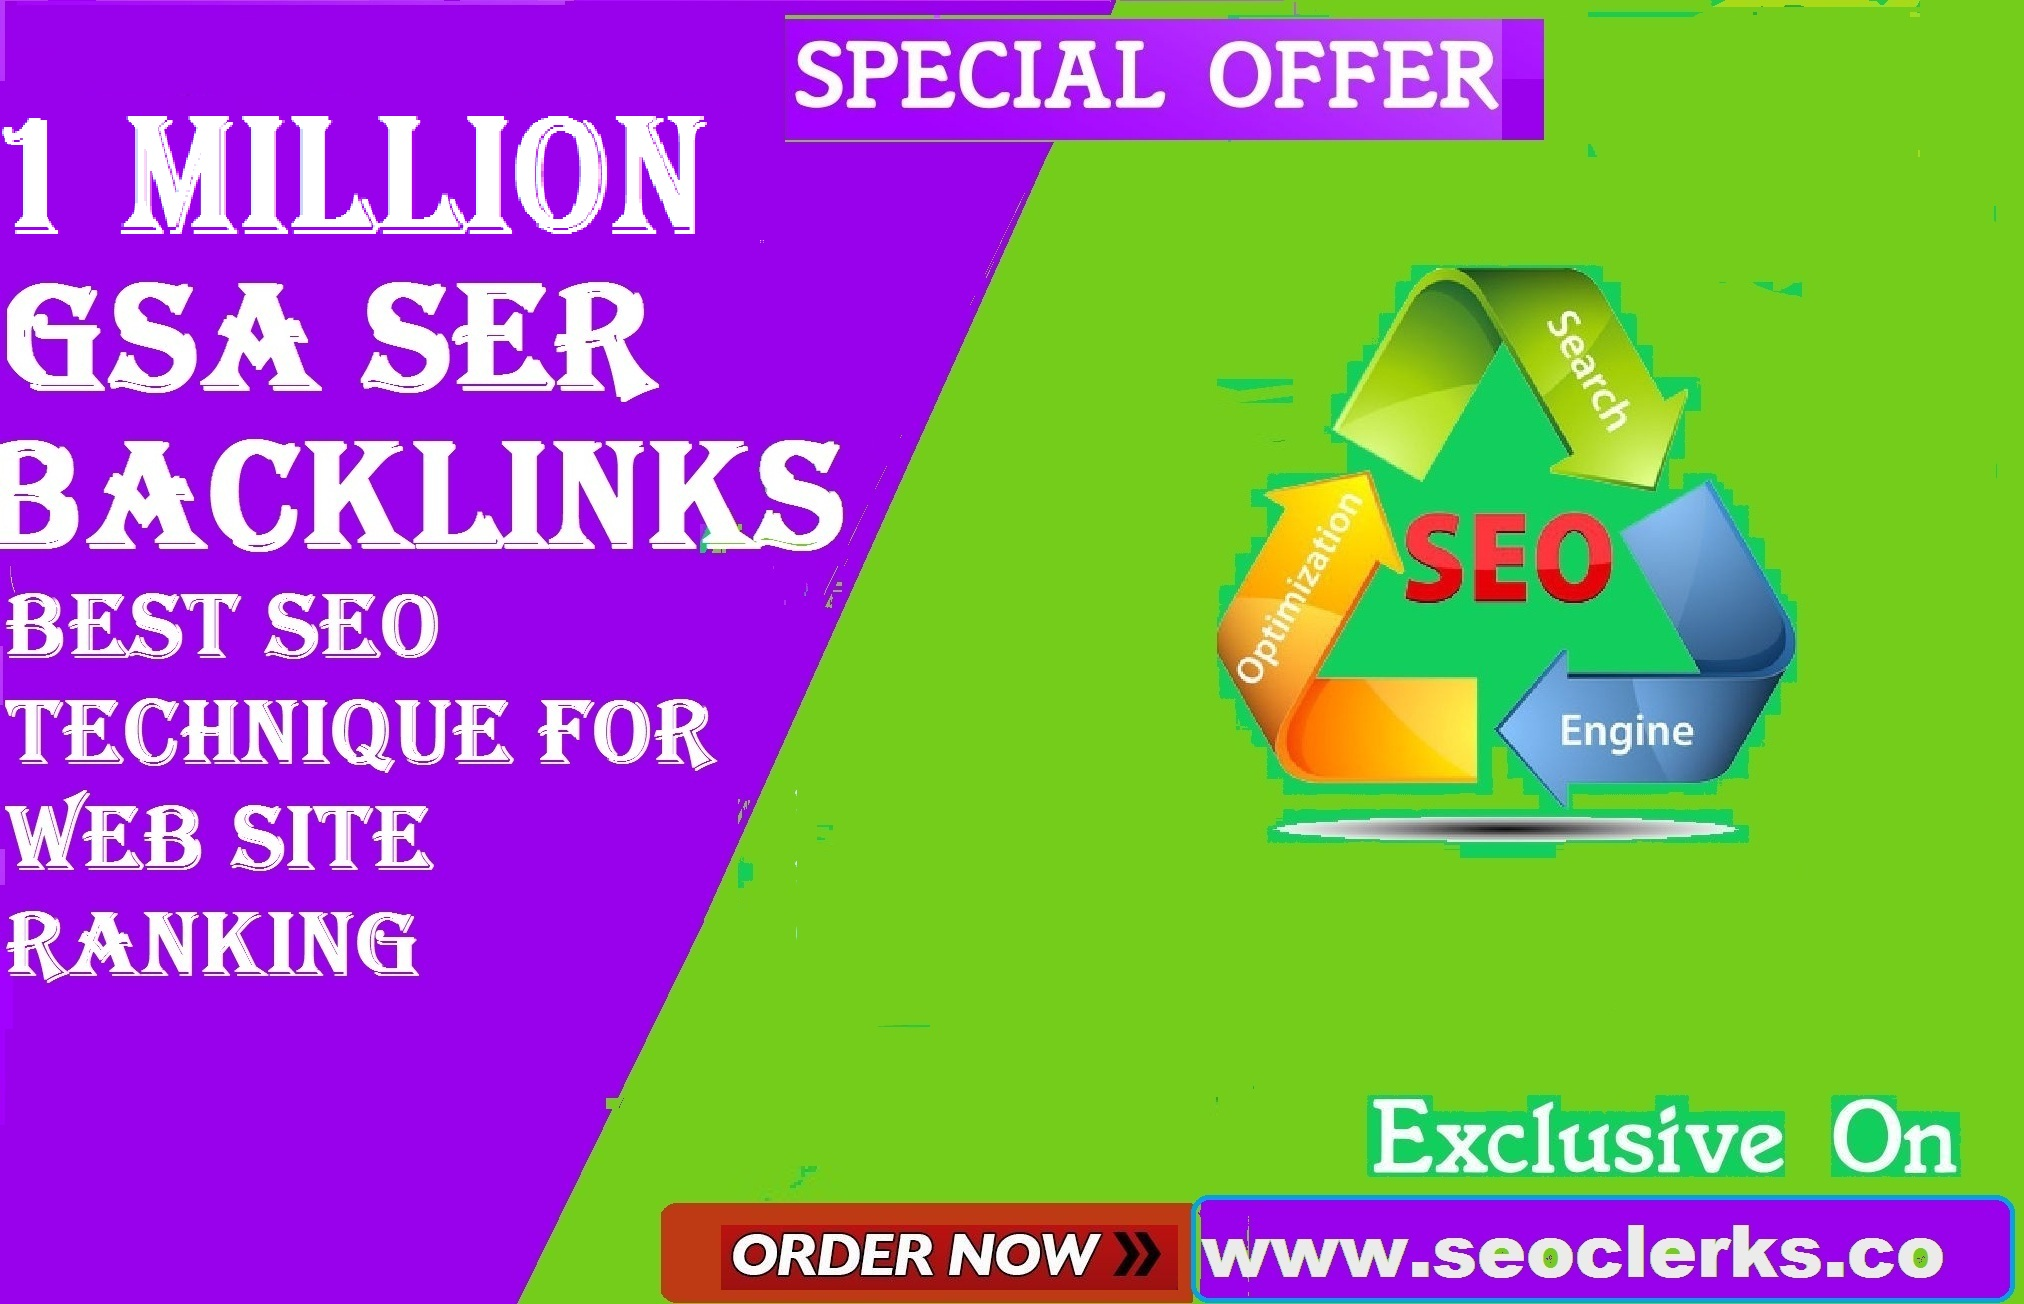 1000,000 GSA SER Verified Backlinks for SEO Ranking